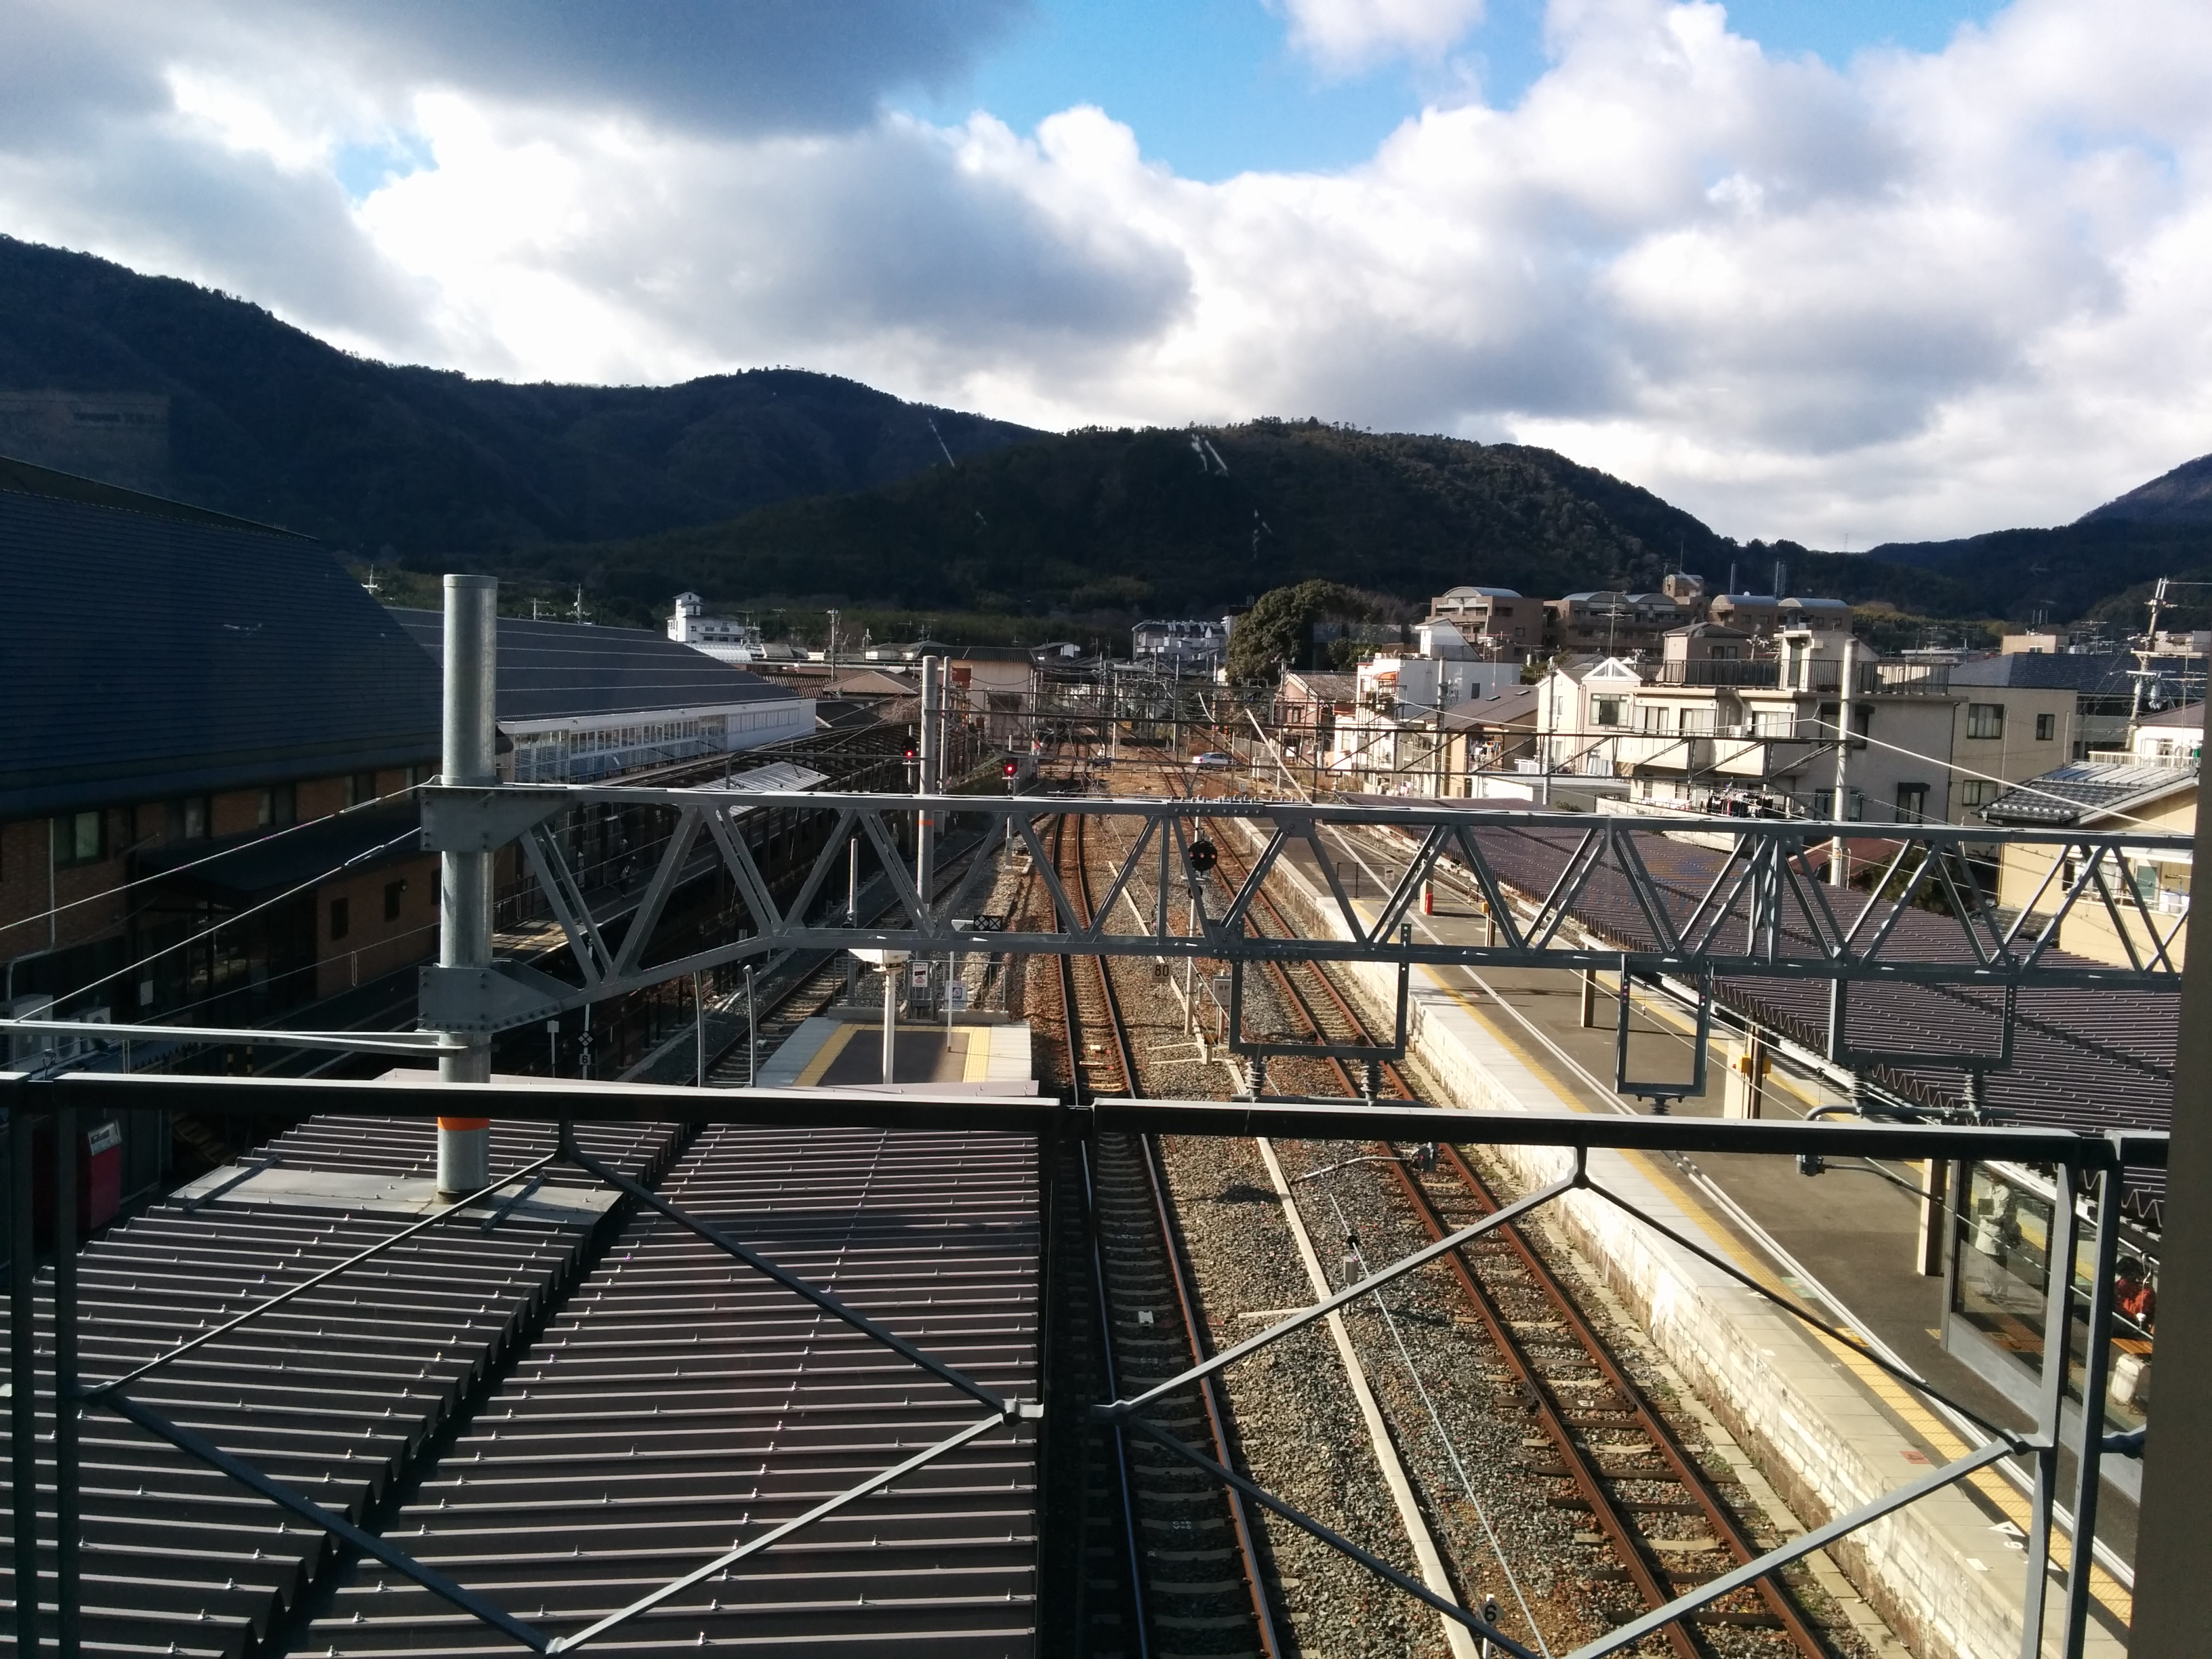 Arriving at Arashiyama